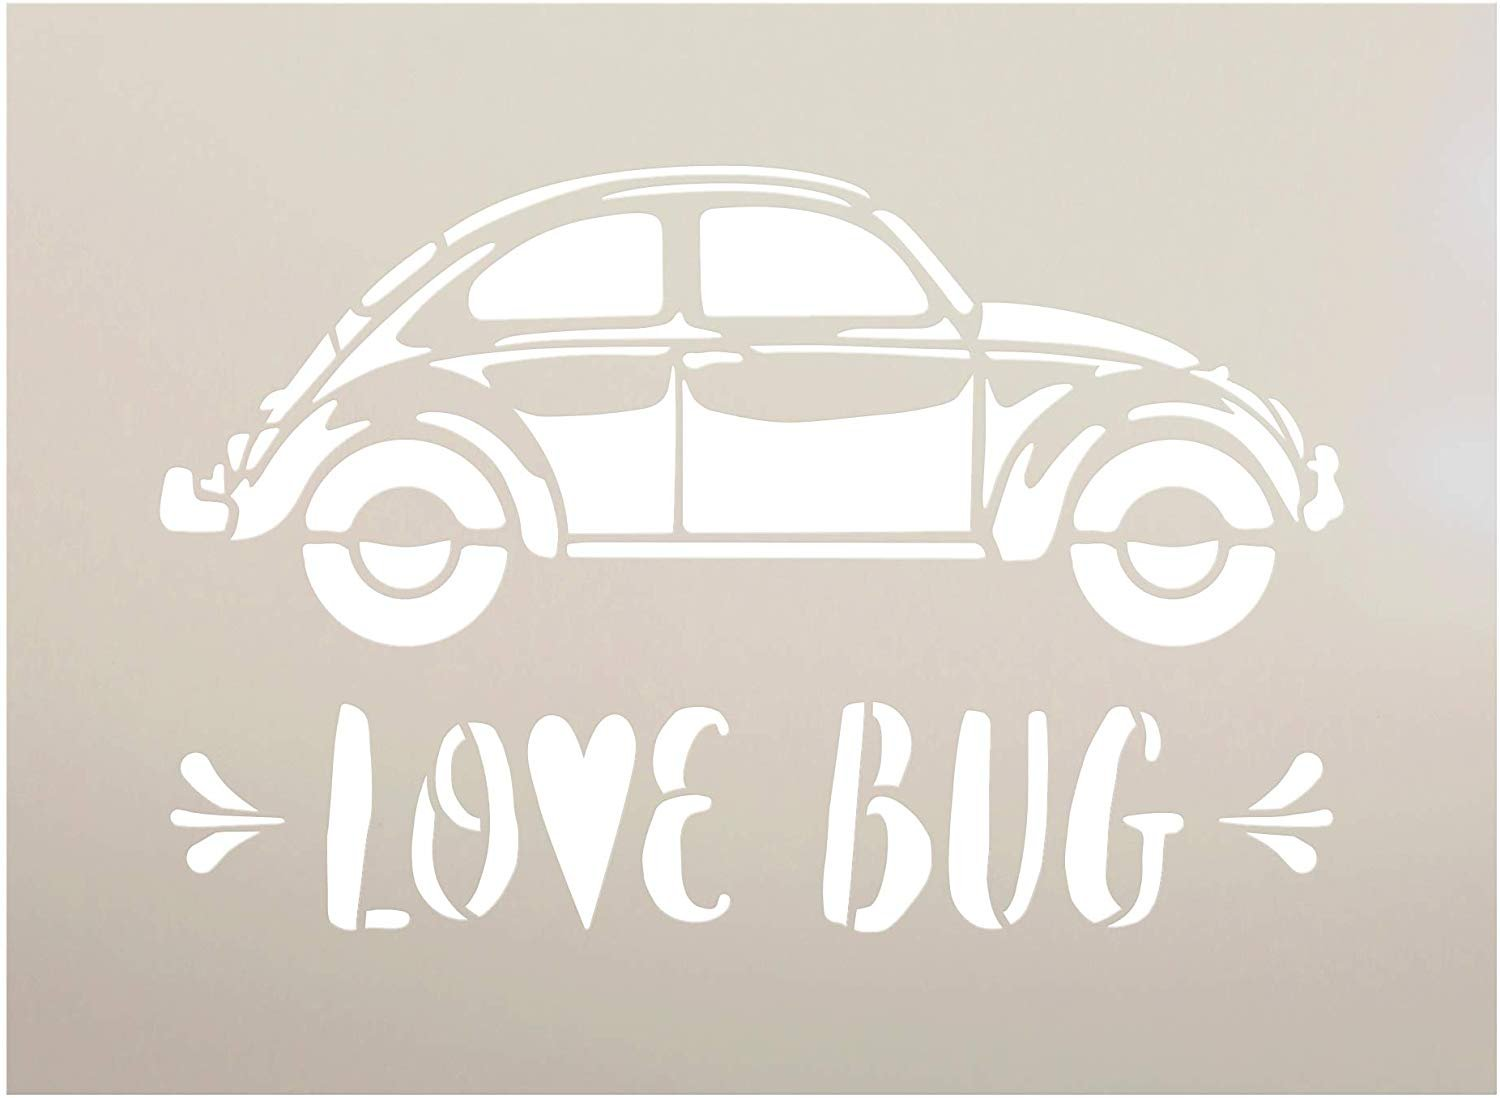 Love Bug Side View Stencil with Heart by StudioR12   DIY Vintage Beetle Style Valentine's Day Home Decor   Craft & Paint Wood Signs   Reusable Mylar Template   Select Size